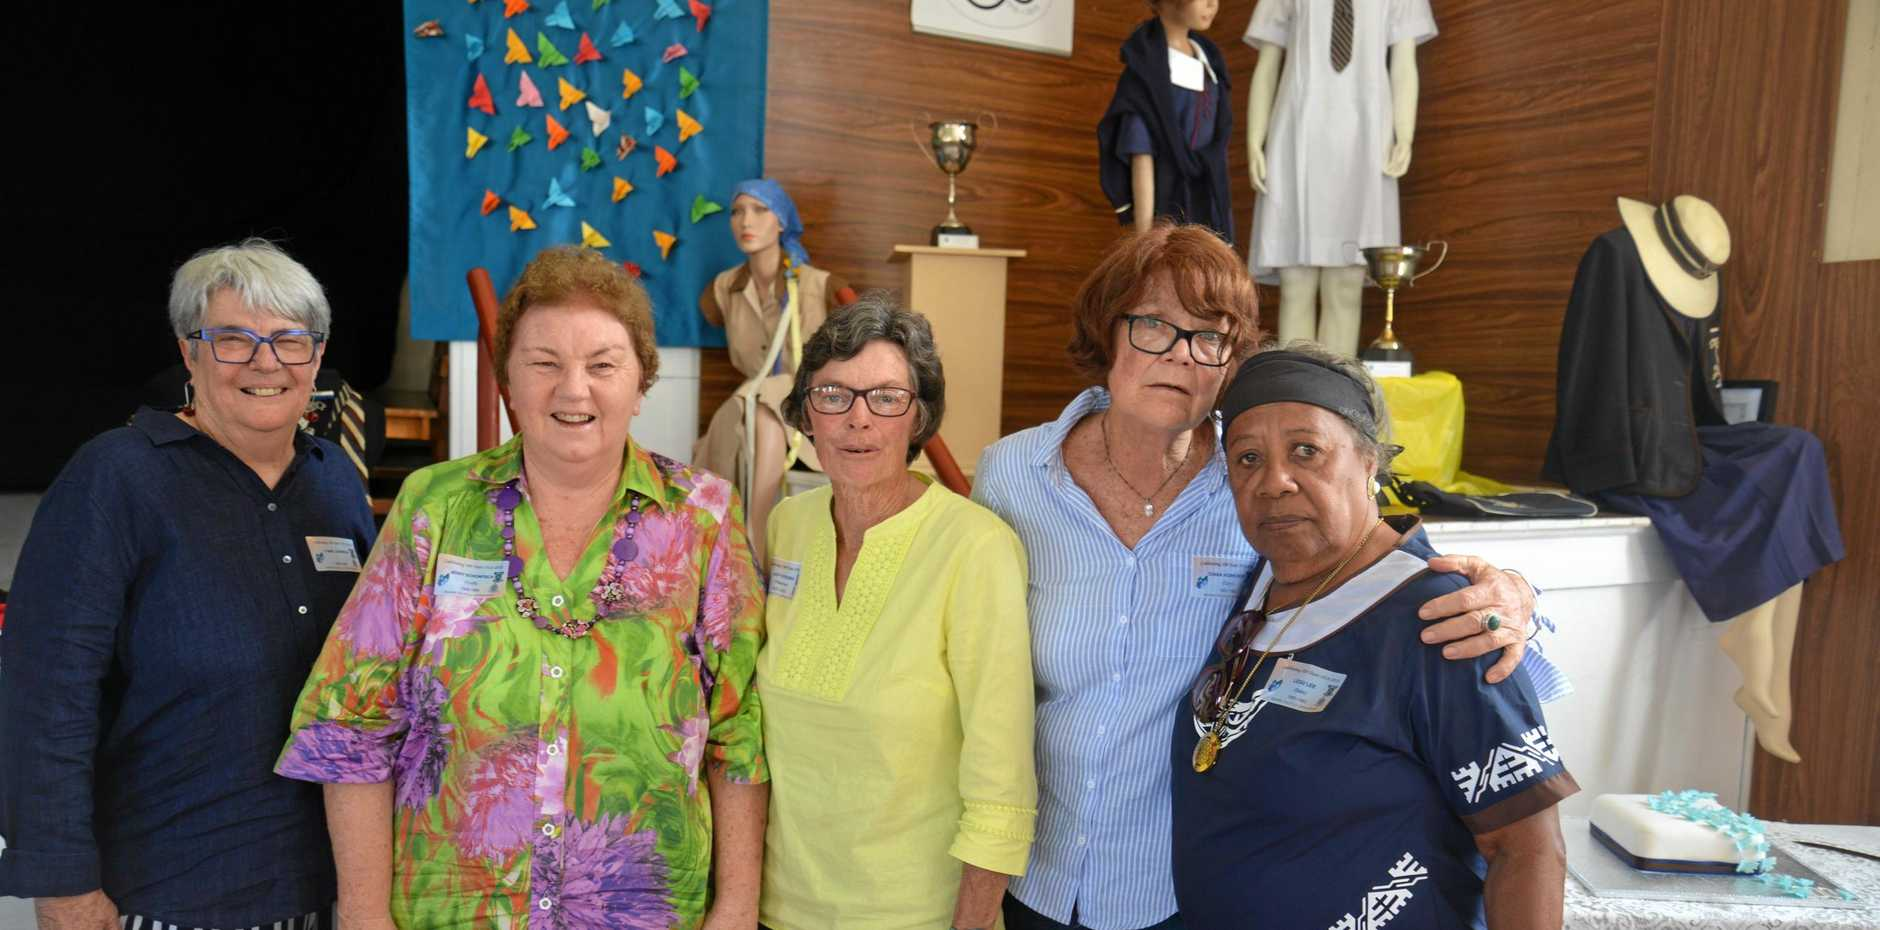 Lyn Johnson, Jenny Schonfisch, Judy Stevens, Diana Howcroft and Legu Lee at the St Catharine's 100 year celebration.